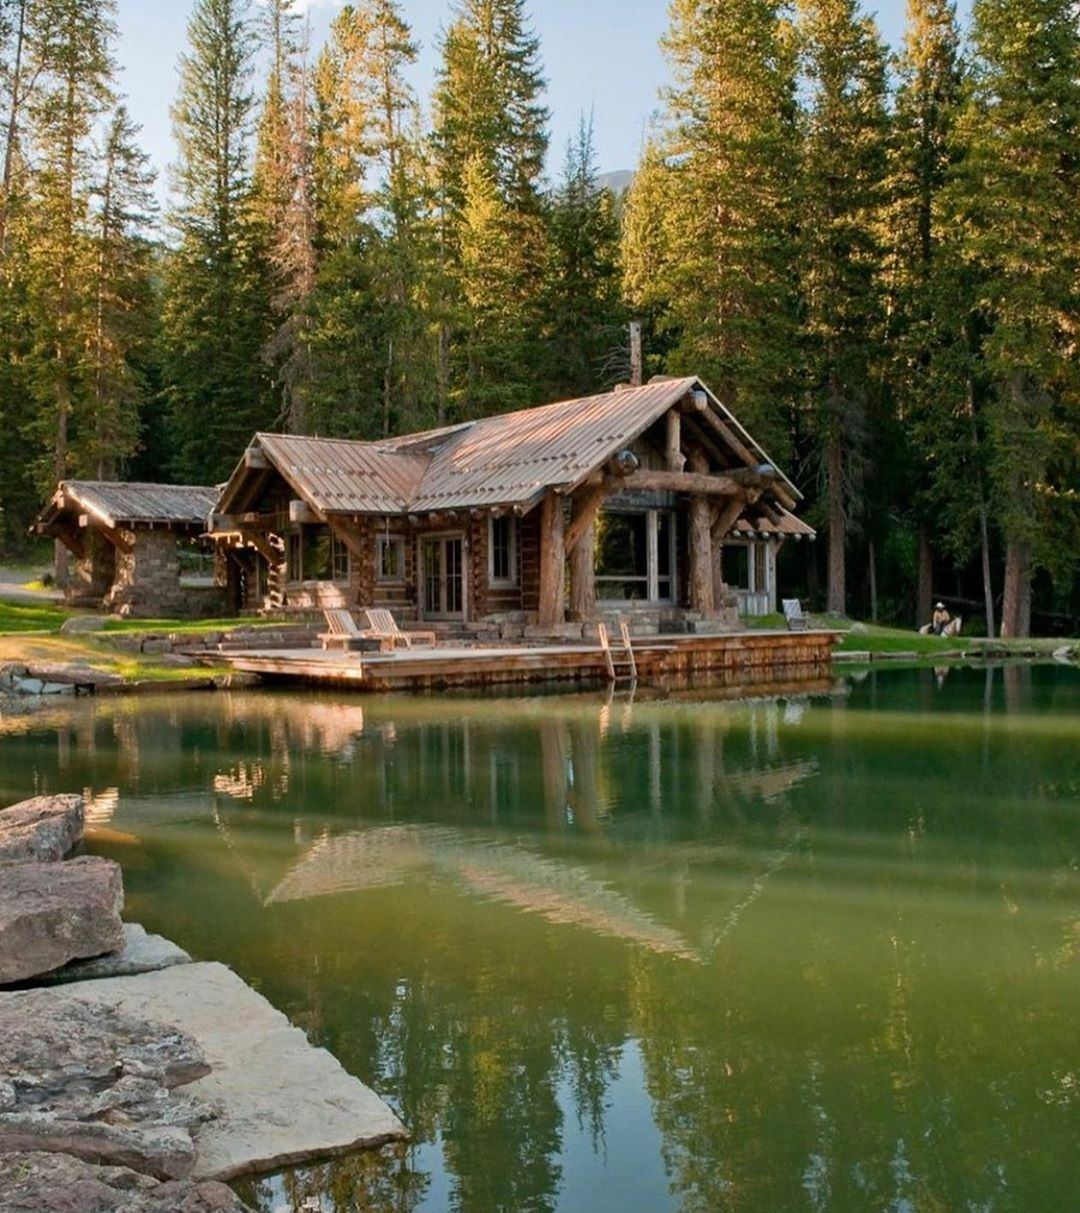 the manly life - cabin on the lake